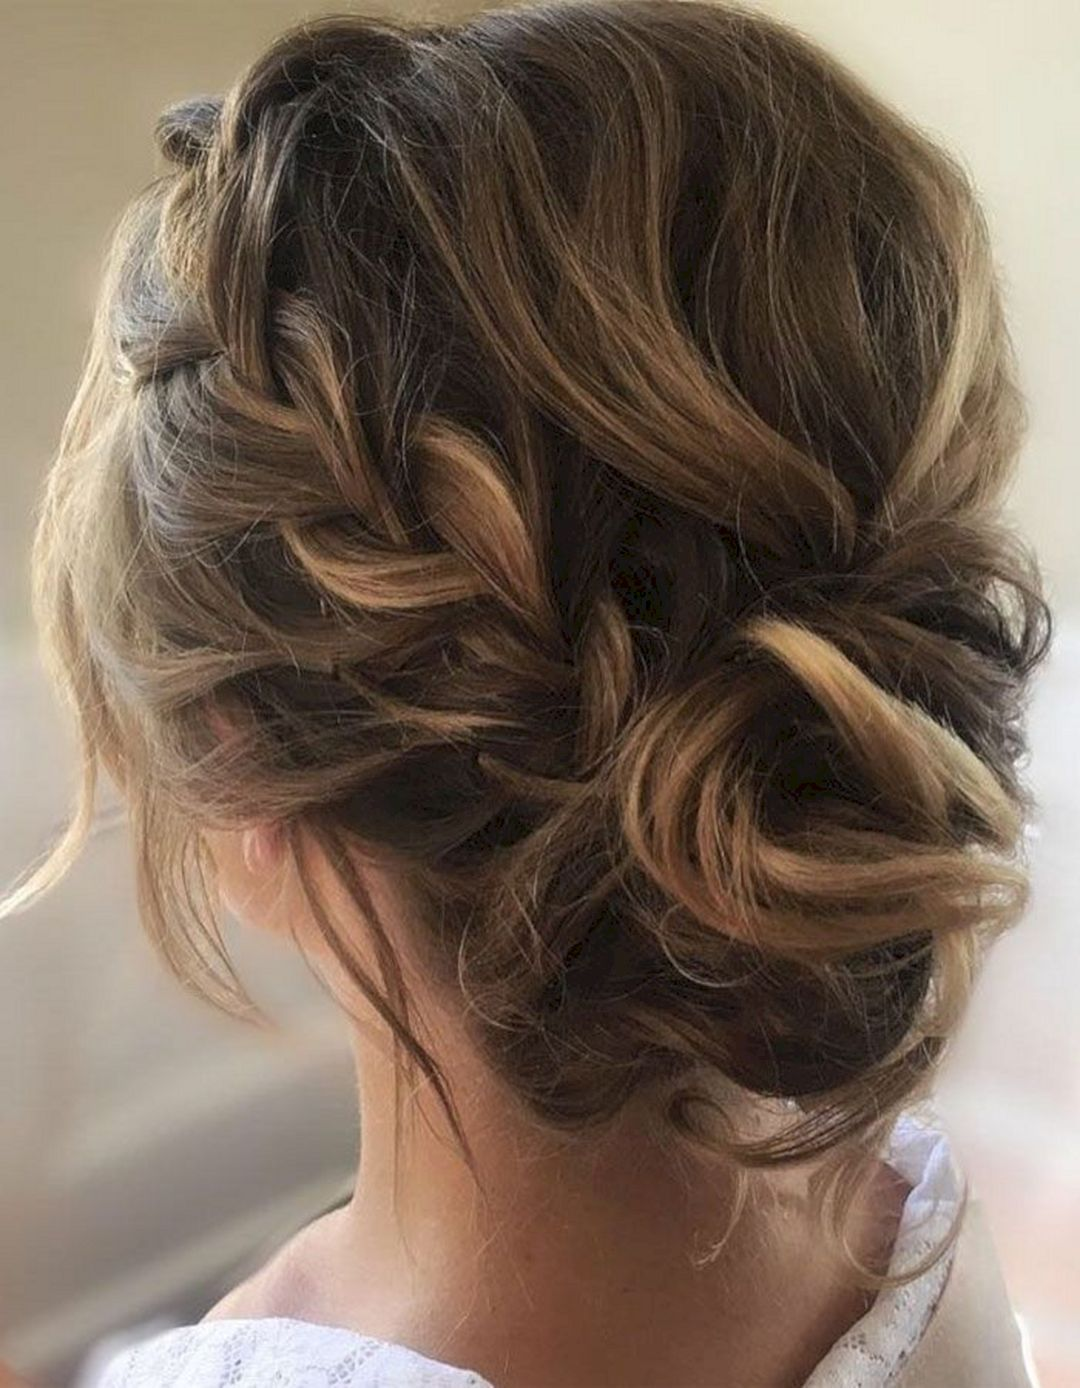 Pin by inayat grewal on hairstyles pinterest easy braided updo